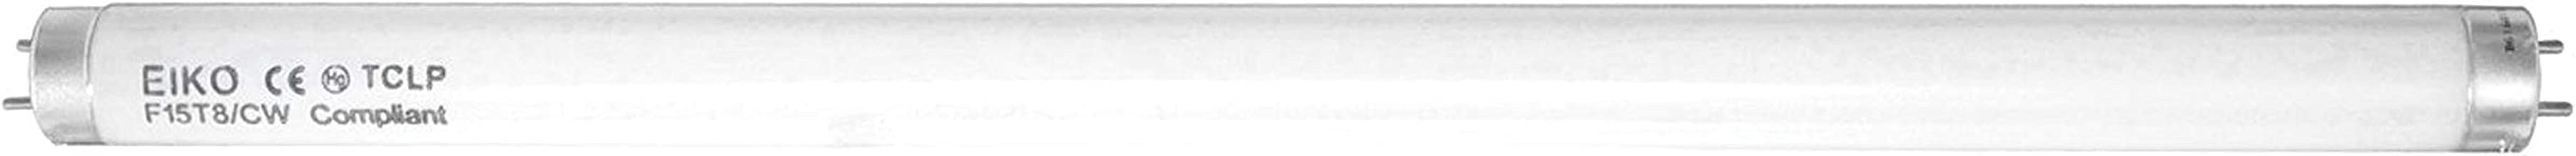 """Camco 54878 Replacement F15T8/CW 18"""" Fluorescent Light Bulb - Pack of 2"""